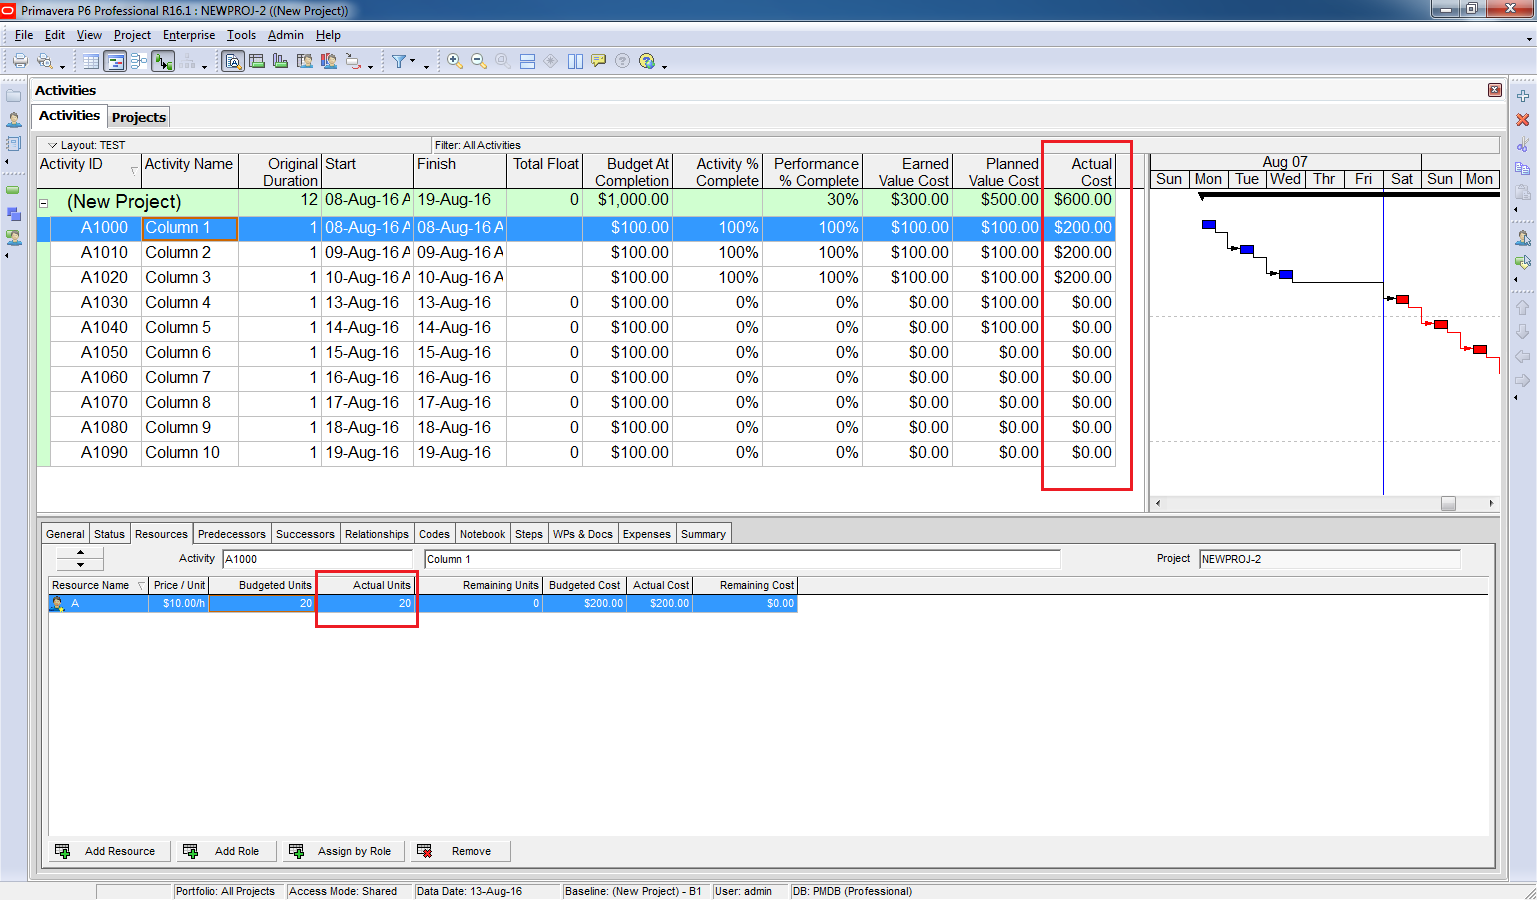 How to use Earned Value Management in Primavera P6 - 7